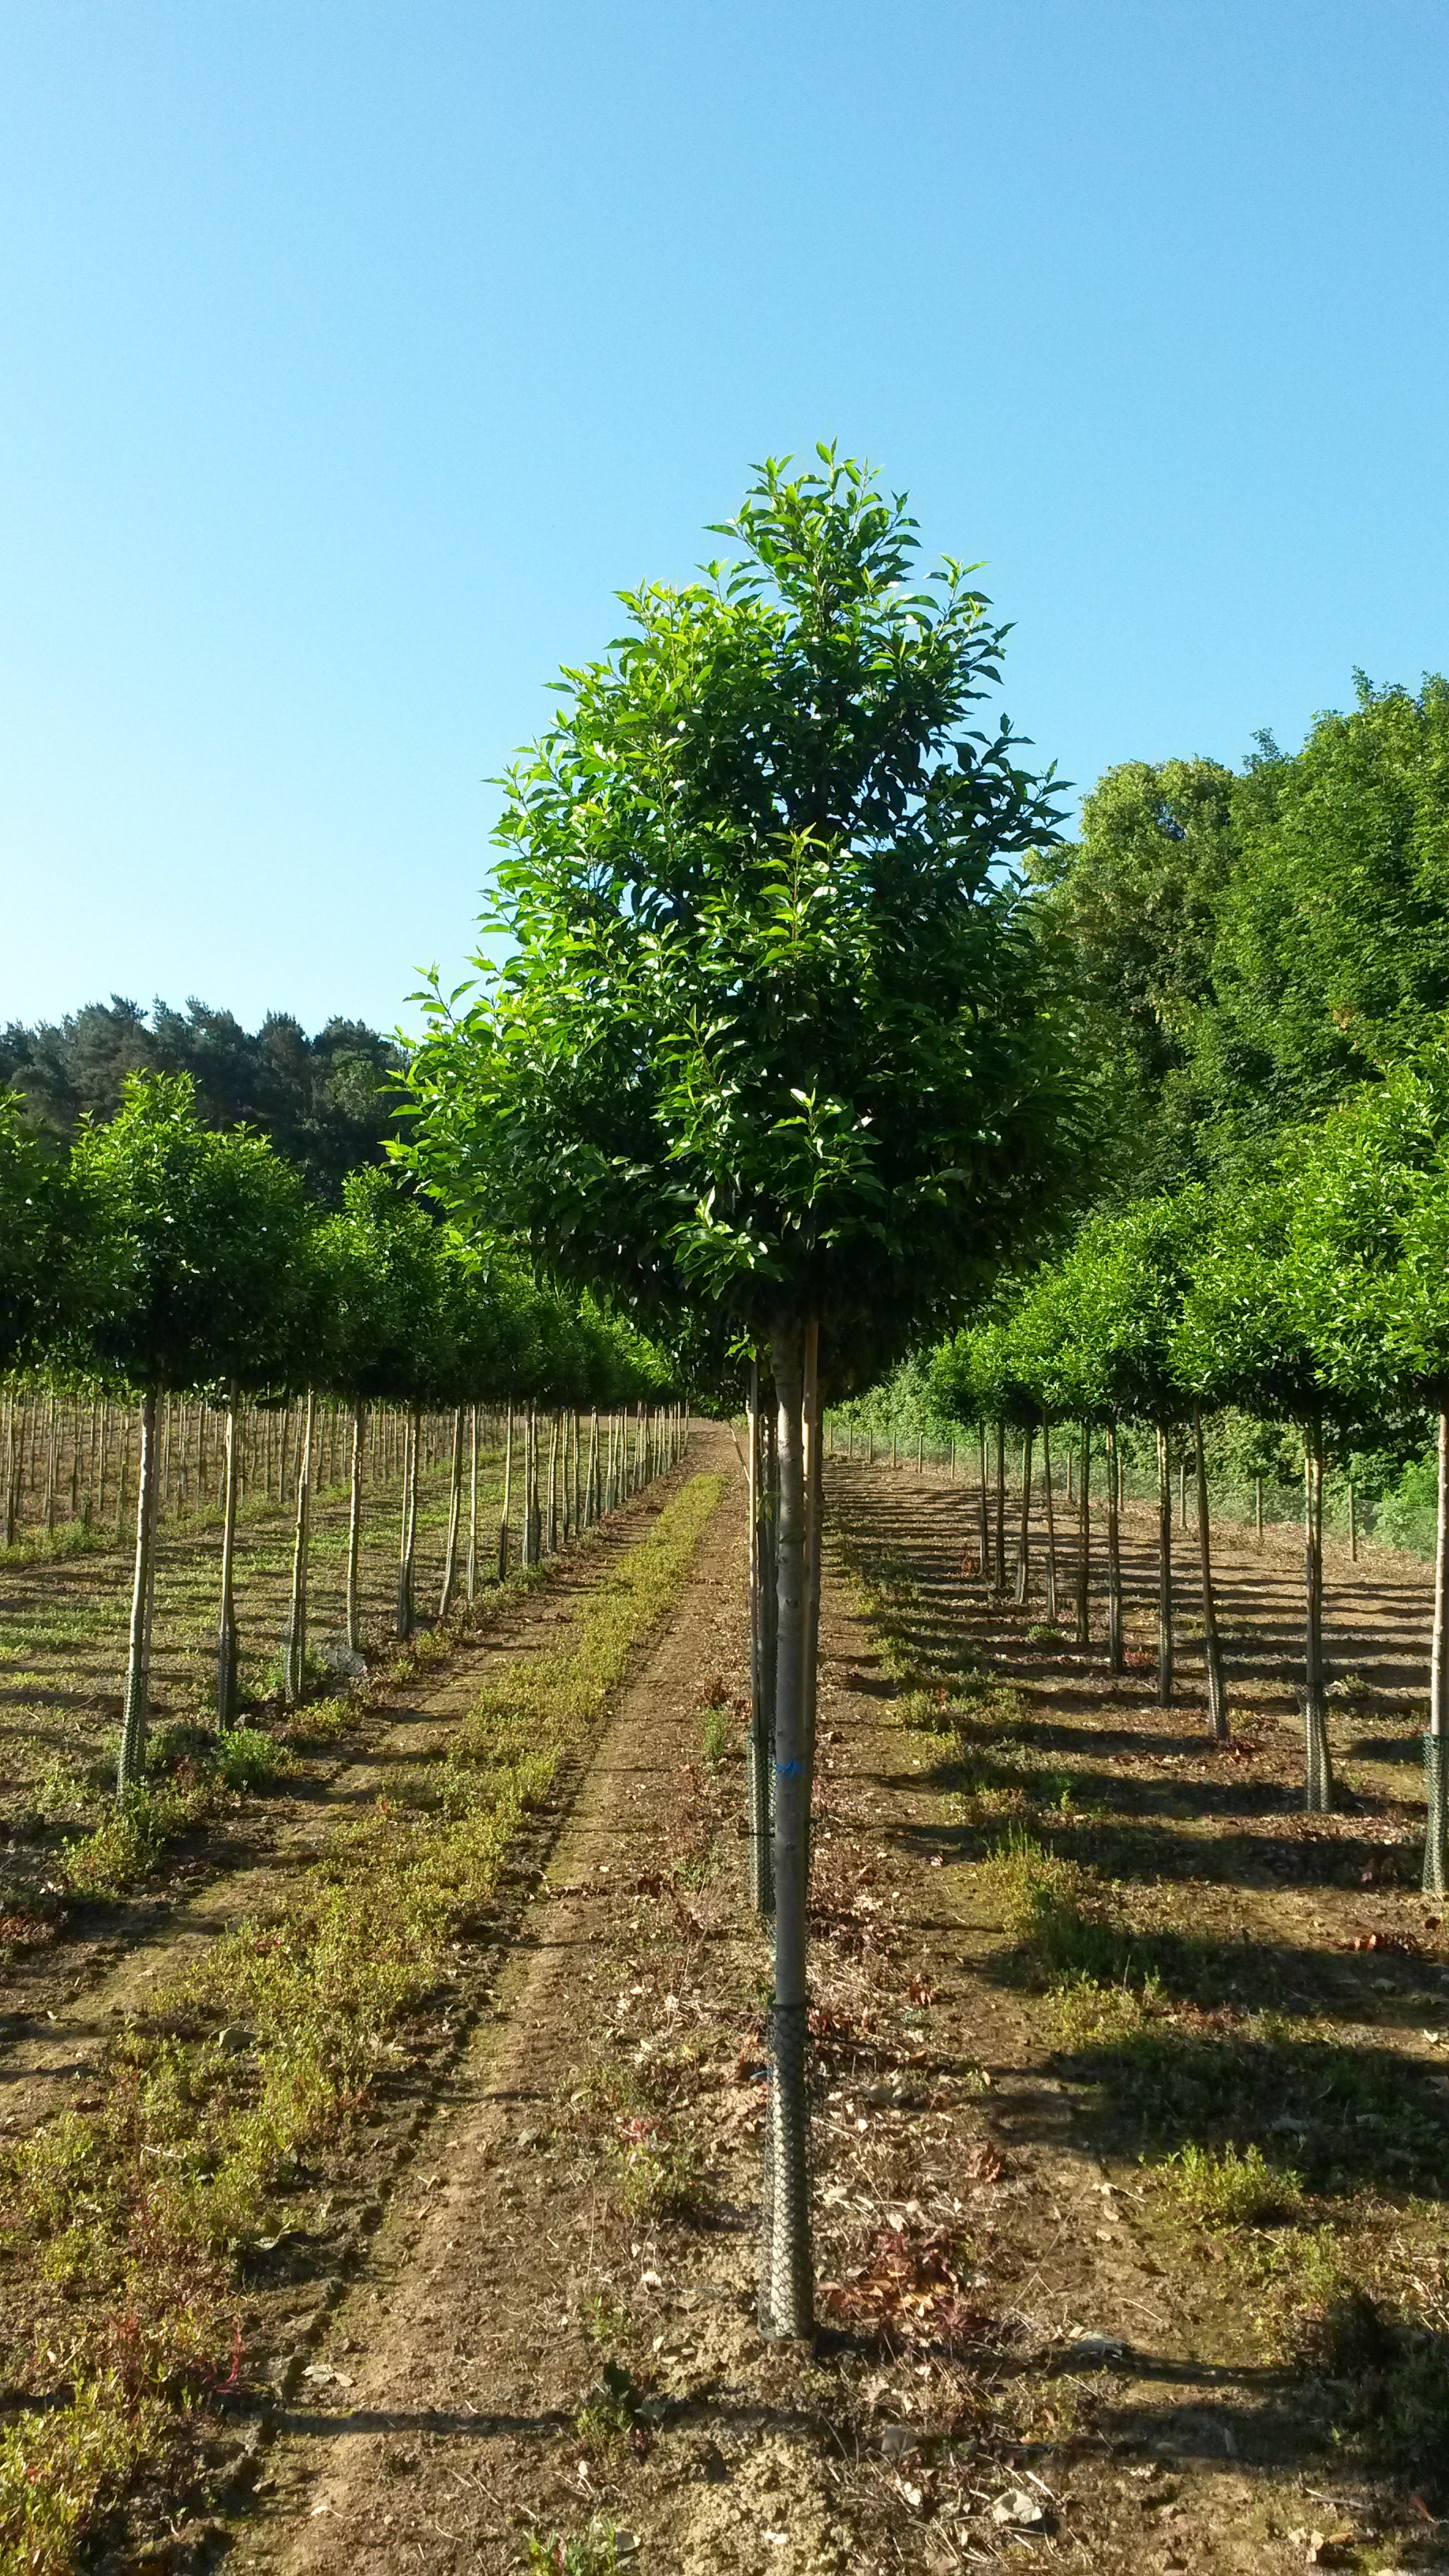 Portugese laurel trees for evergreen screening